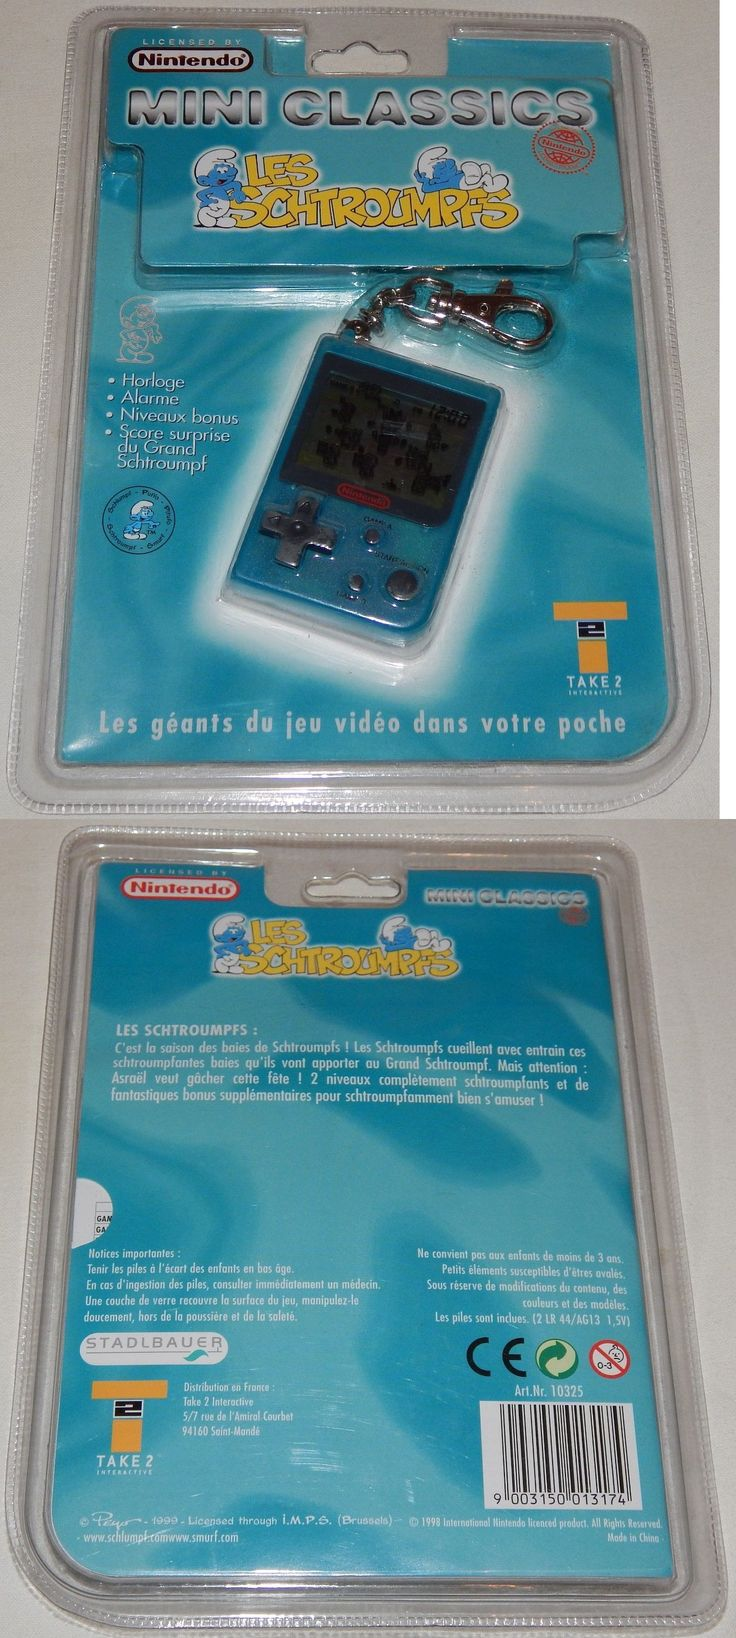 Pre 1970 719 Vintage 1999 Nintendo Mini Classic The Smurfs Lcd Handheld Game Watch